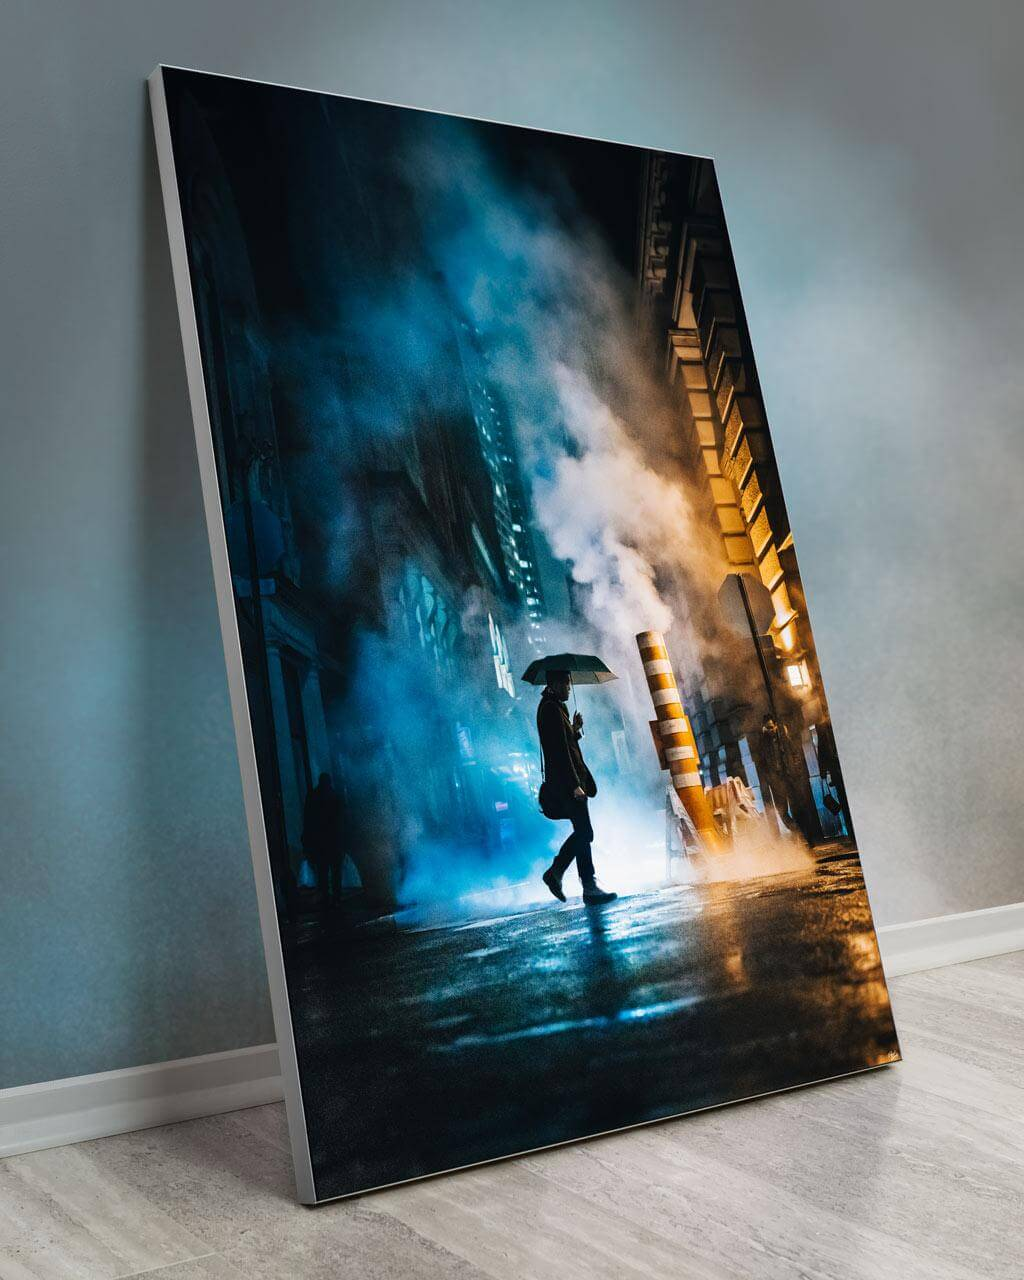 Huge Wall Decor New York City Street Art Gigantic Big Biggest Massive Huge Large Largest Giant Wall Décor Art Backlit Fabric Home Deco Artwork Artist New York City Street Icon Portrait Scenic Photographer David Everly undercover